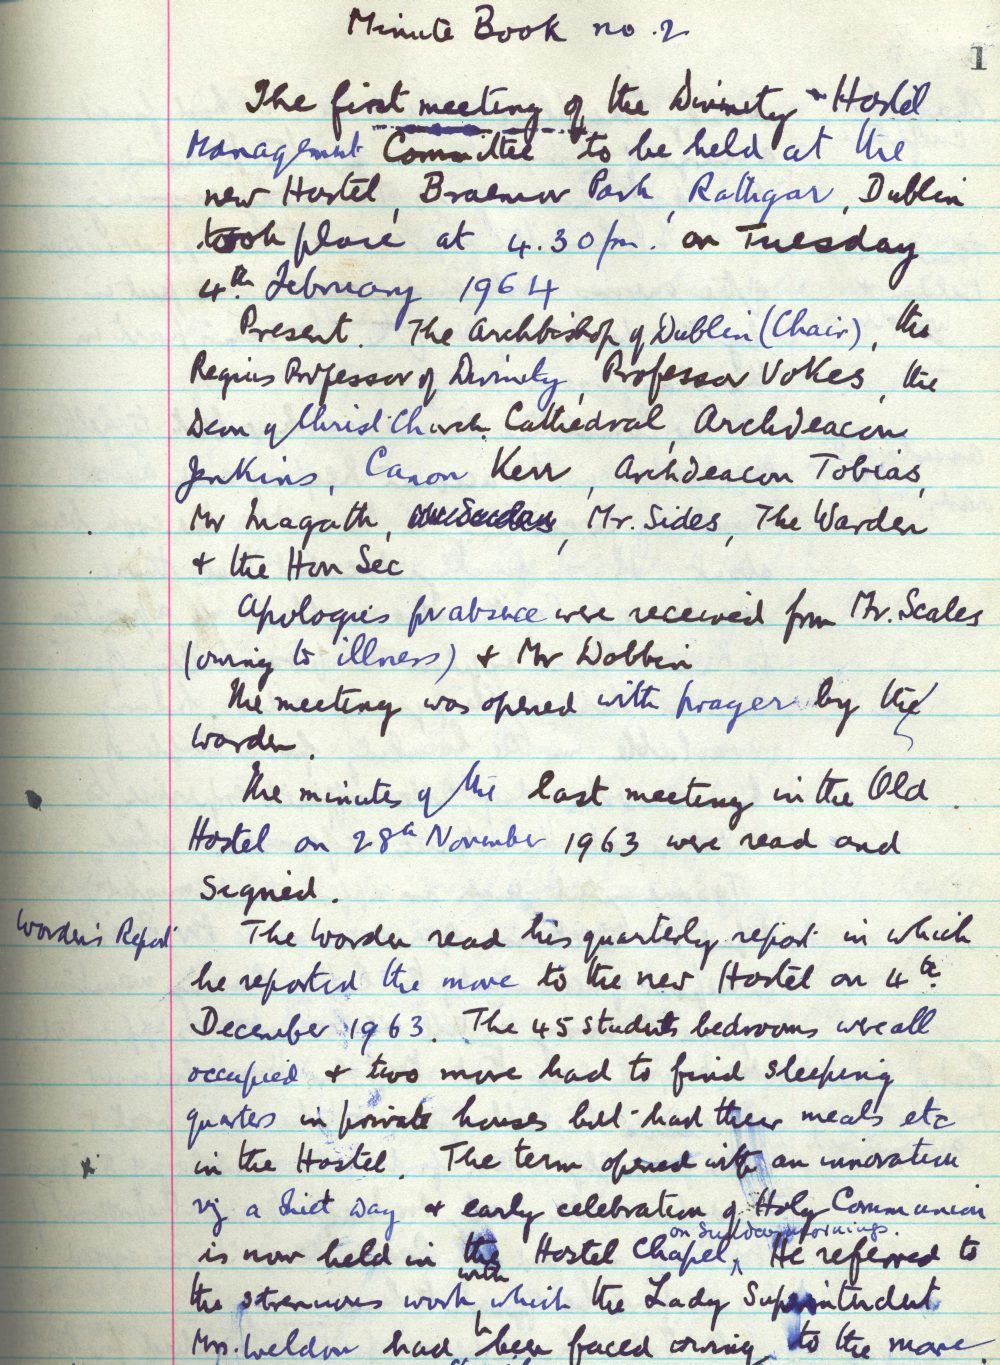 Opening minute of the Management Committee held at the new hostel, 4 February 1964, in RCB Library, Divinity Hostel Minute Book no. 2, 1964-2000